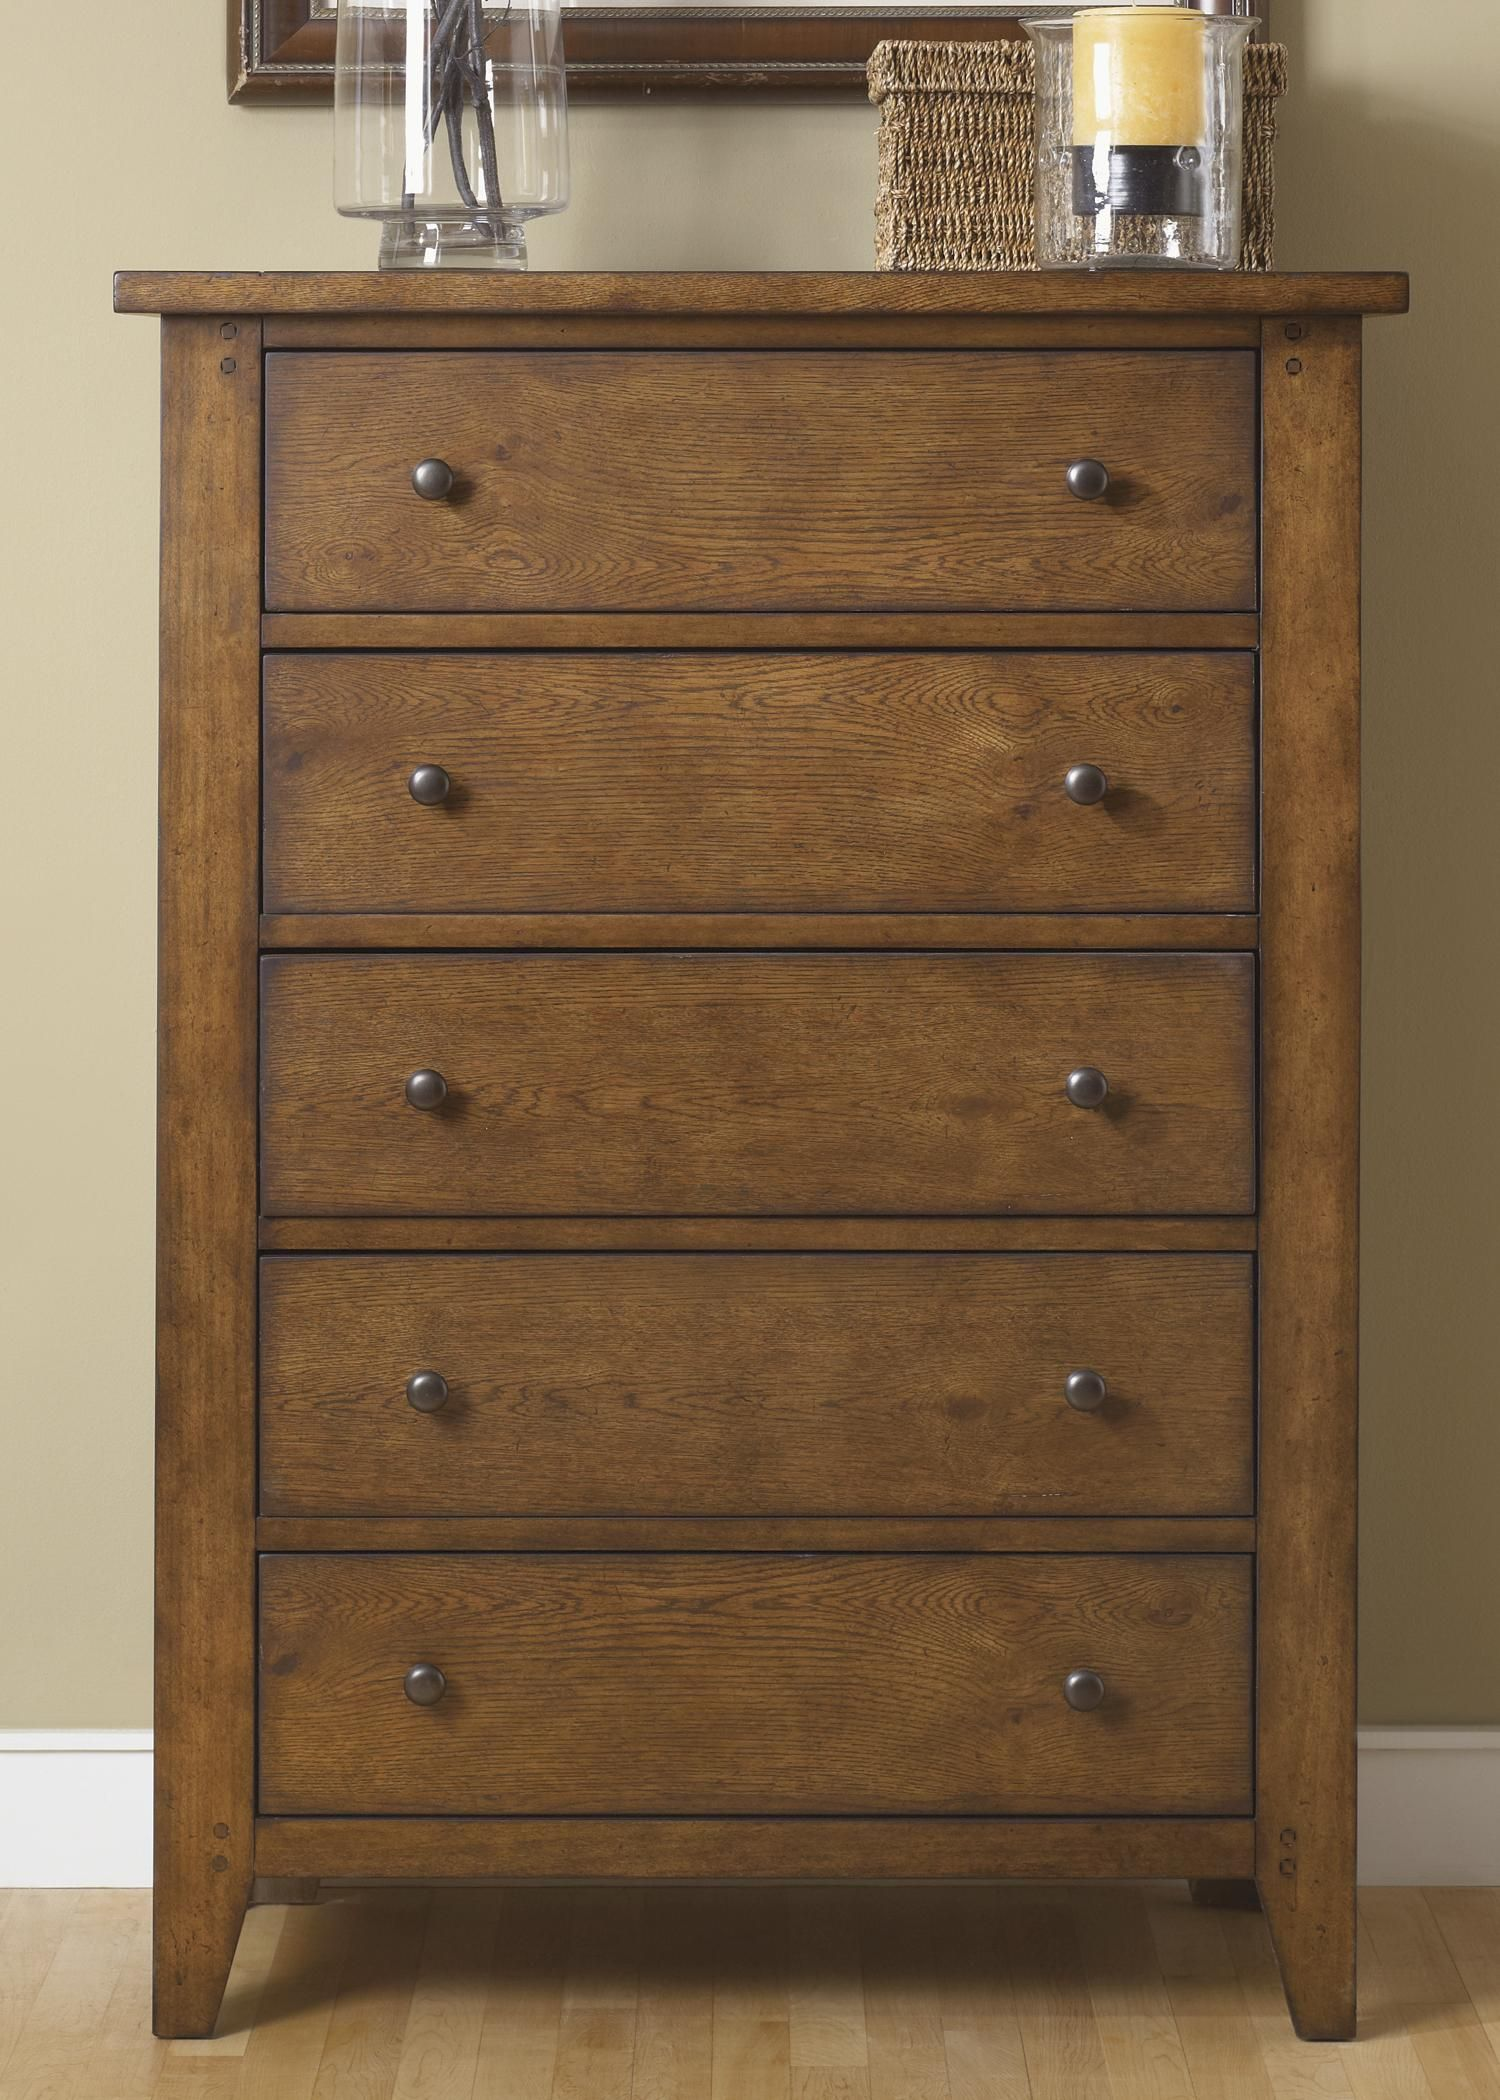 Pin By Nitrojane On Master Bedroom Bathroom Liberty Furniture Chest Of Drawers Drawers